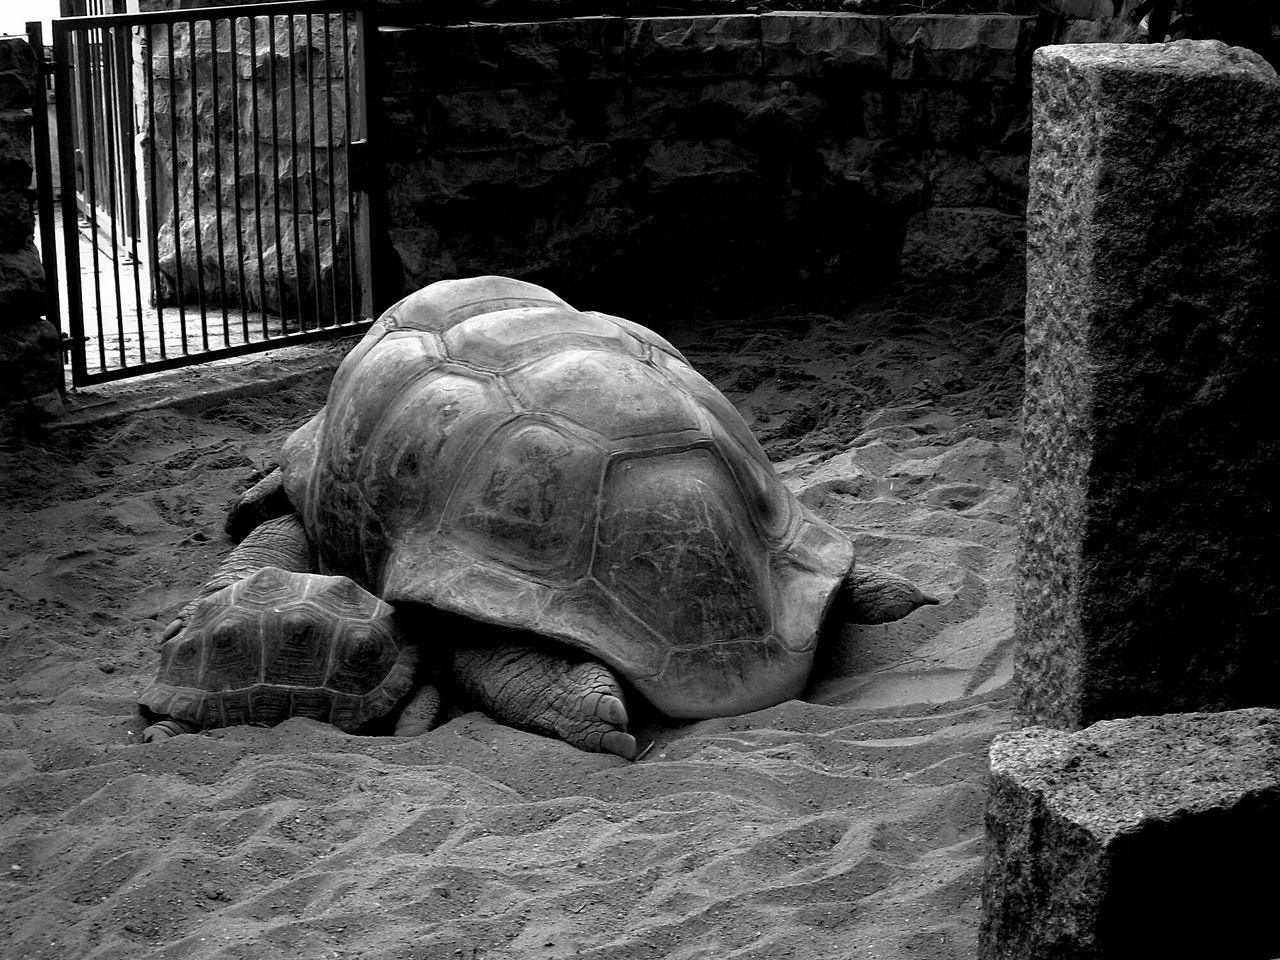 Black And White Bianco E Nero Turtle Turtles Turtle Giant Tartaruga Tartarughe Tartarughe Giganti Animals Animal Zoo Animals  Animali Zoo Animal Family EyeEm Best Shots EyeEm Nature Lover EyeEm Animal Lover EyeEm Gallery EyeEm Best Edits Eyeem Black And White Habitat For Animals Habitat Big Animals Love Animals Sleeping Animal